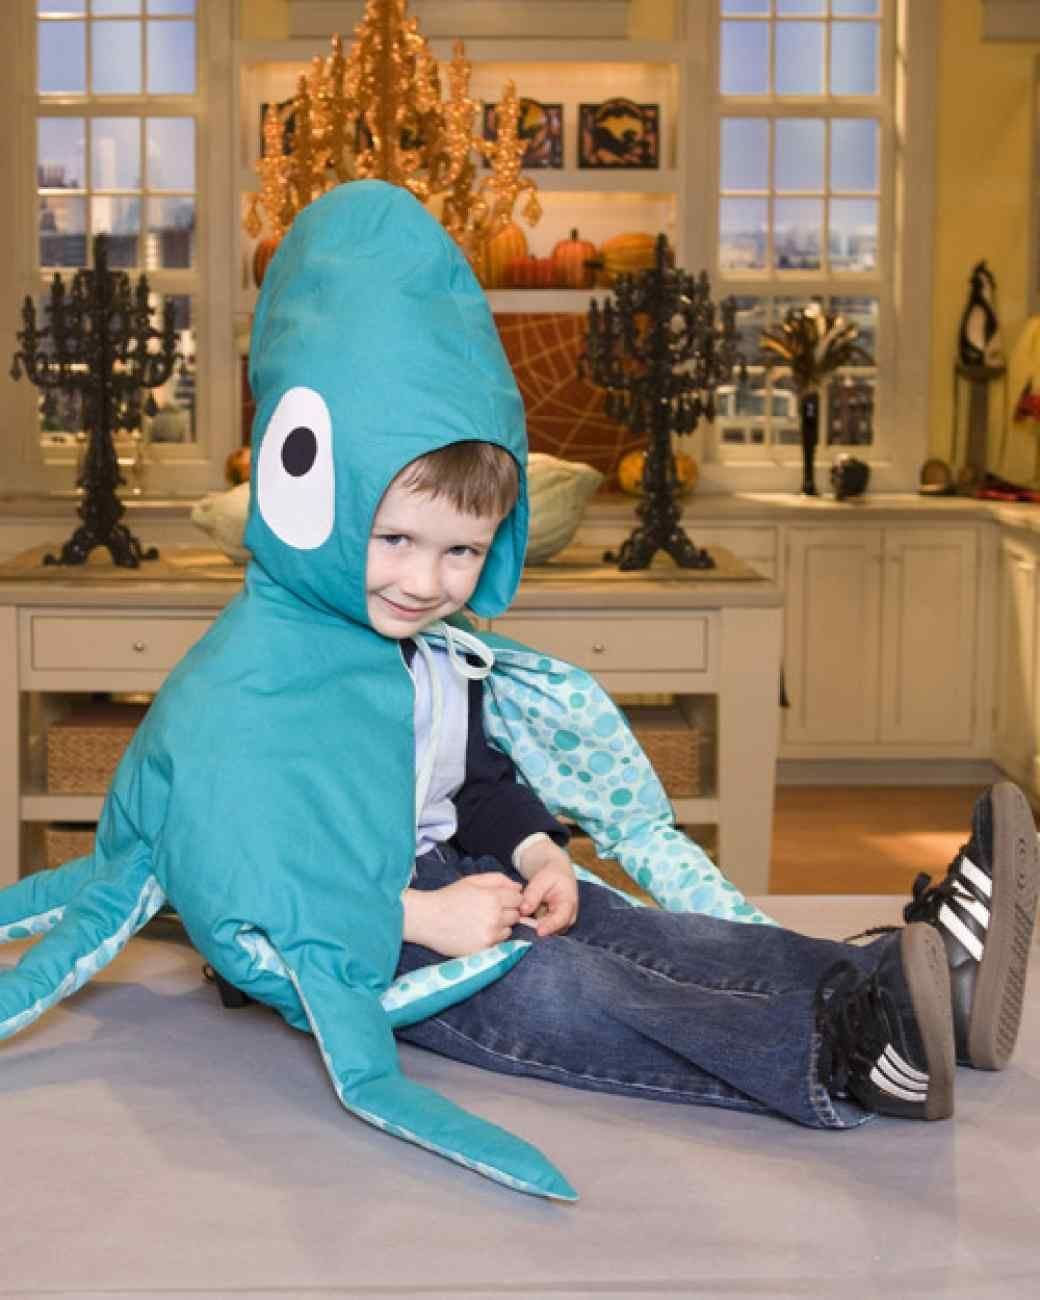 In House Crafter Aaron Caramanis Created This Homemade Octopus Costume A Fun Halloween Idea For Children Or Adults Spooky Alternative